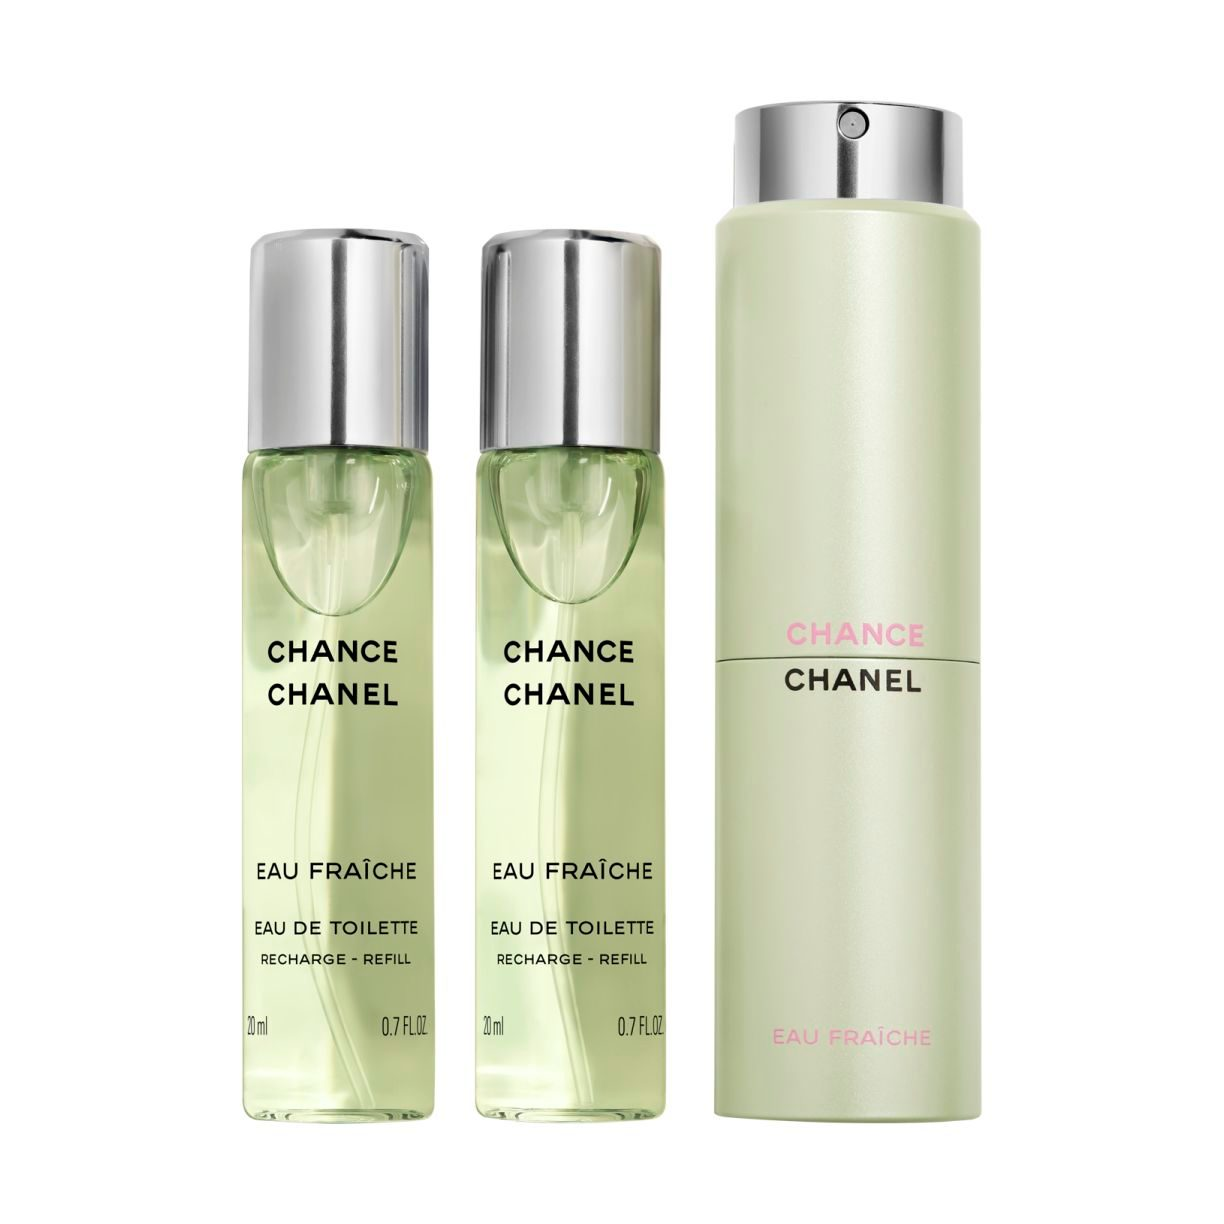 CHANCE EAU FRAÎCHE EAU DE TOILETTE TWIST AND SPRAY